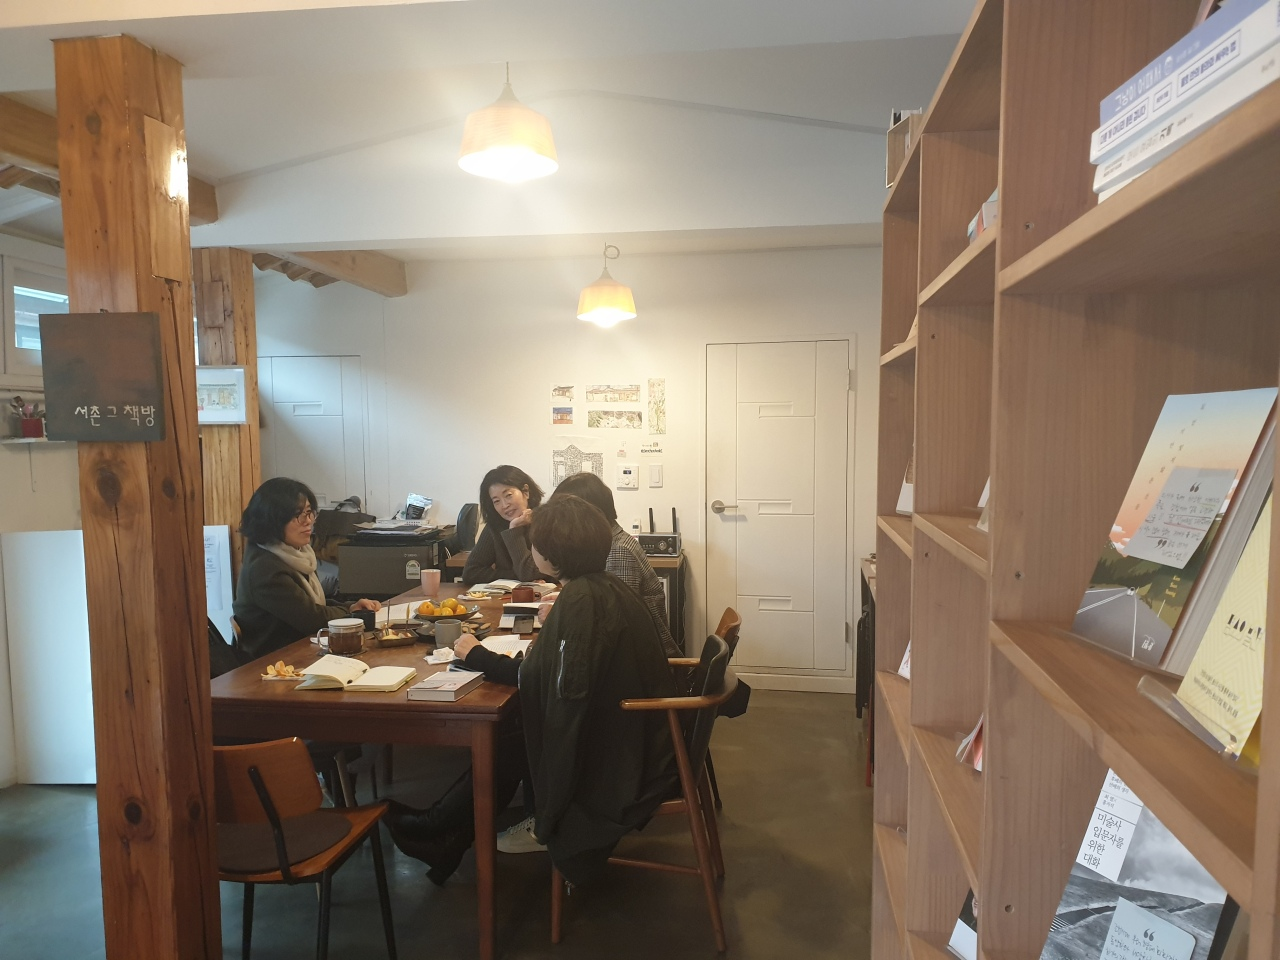 People gather at SeochonBooks to discuss books they've read over the past month. (Park Yuna/The Korea Herald)